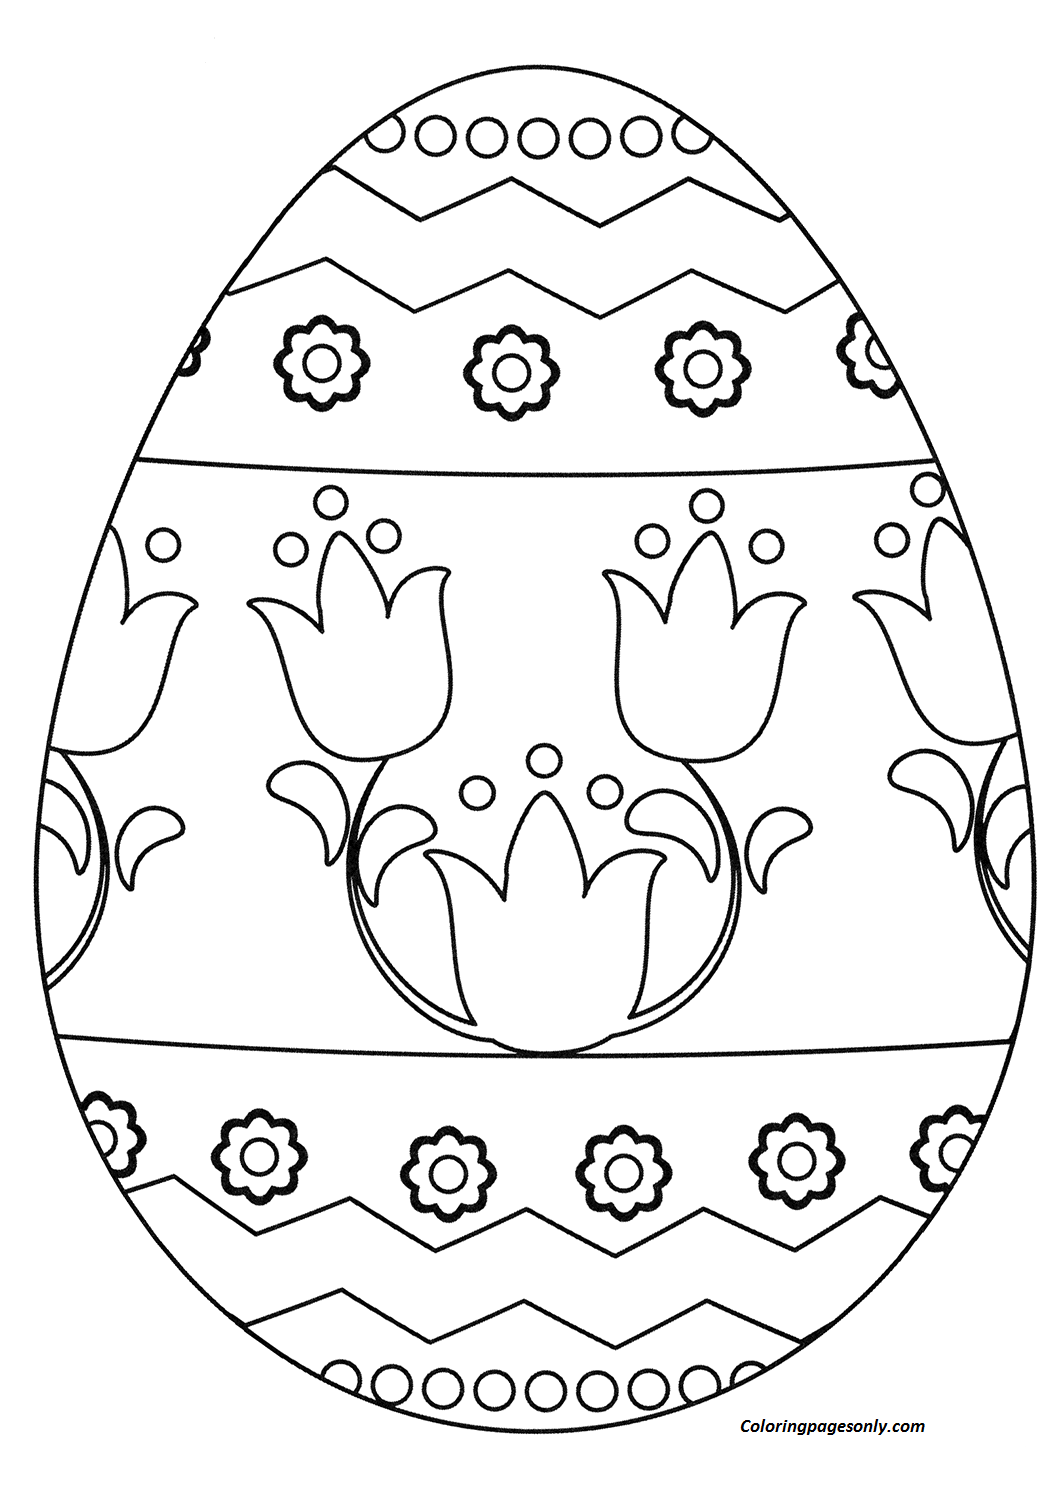 Easter Egg coloring page Coloring Page - Free Coloring ...